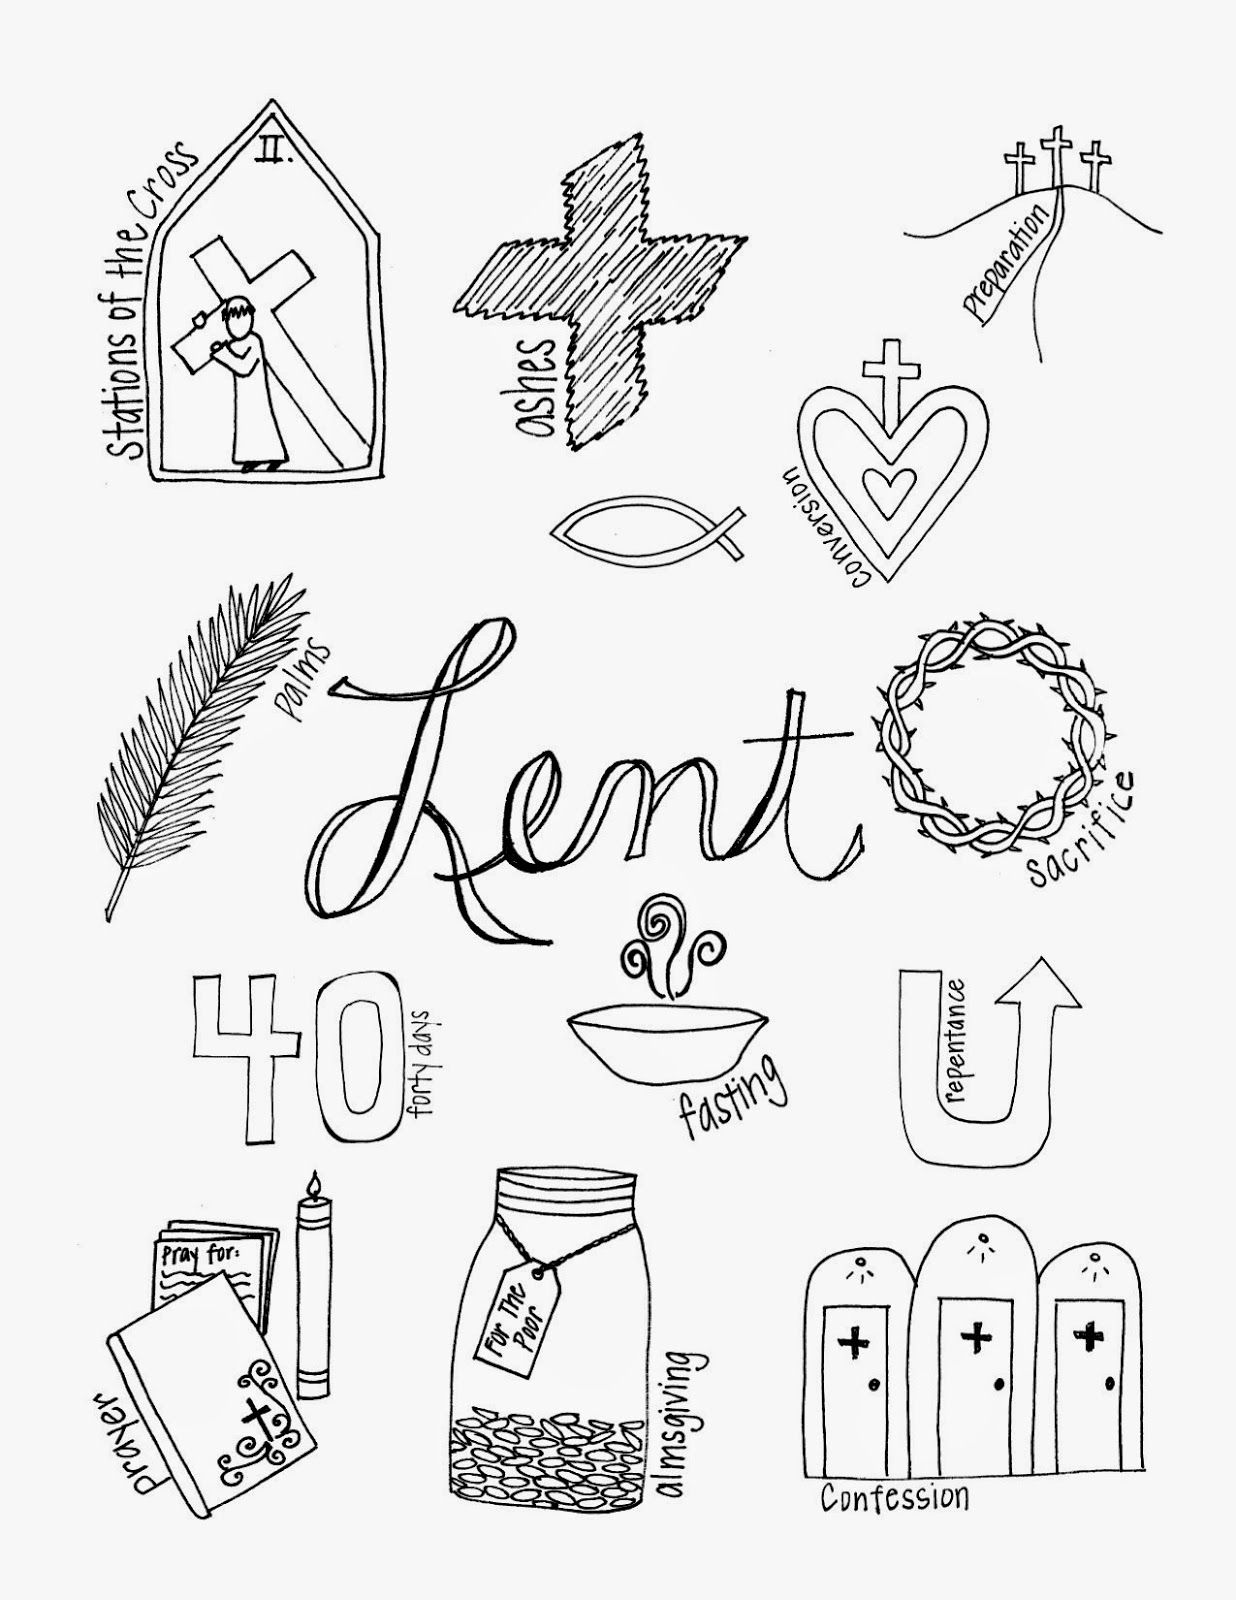 What Lent Looks Like free printable with the signs and symbols of